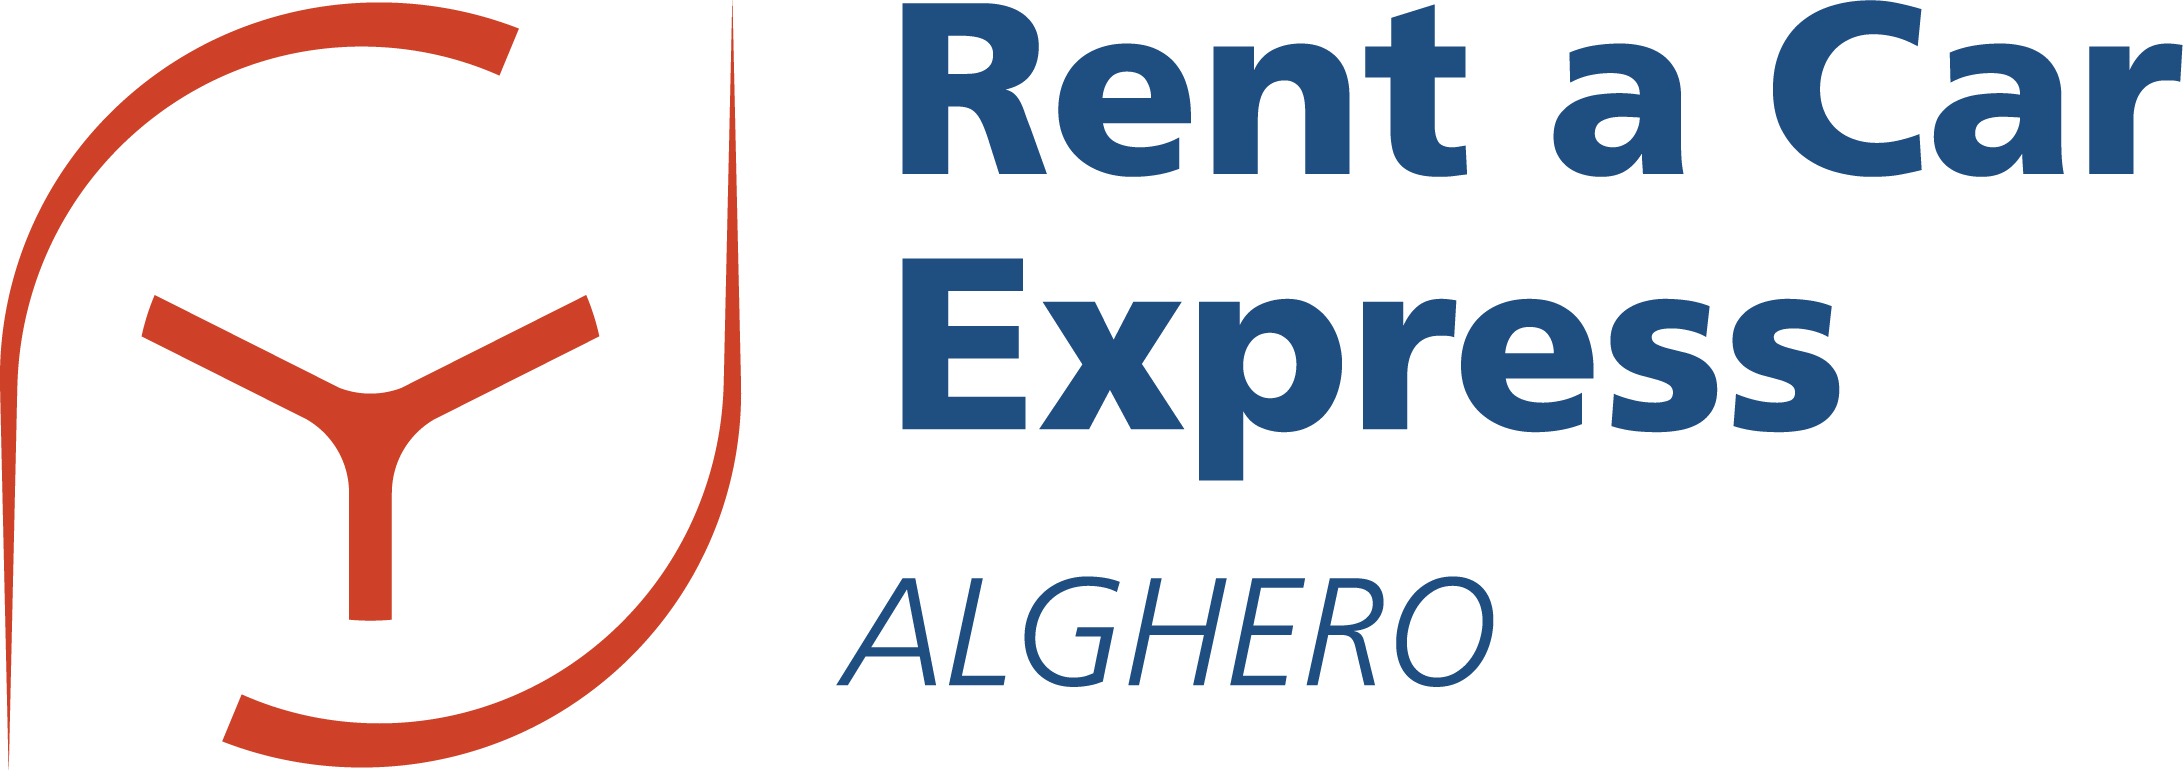 Rent a Car Express